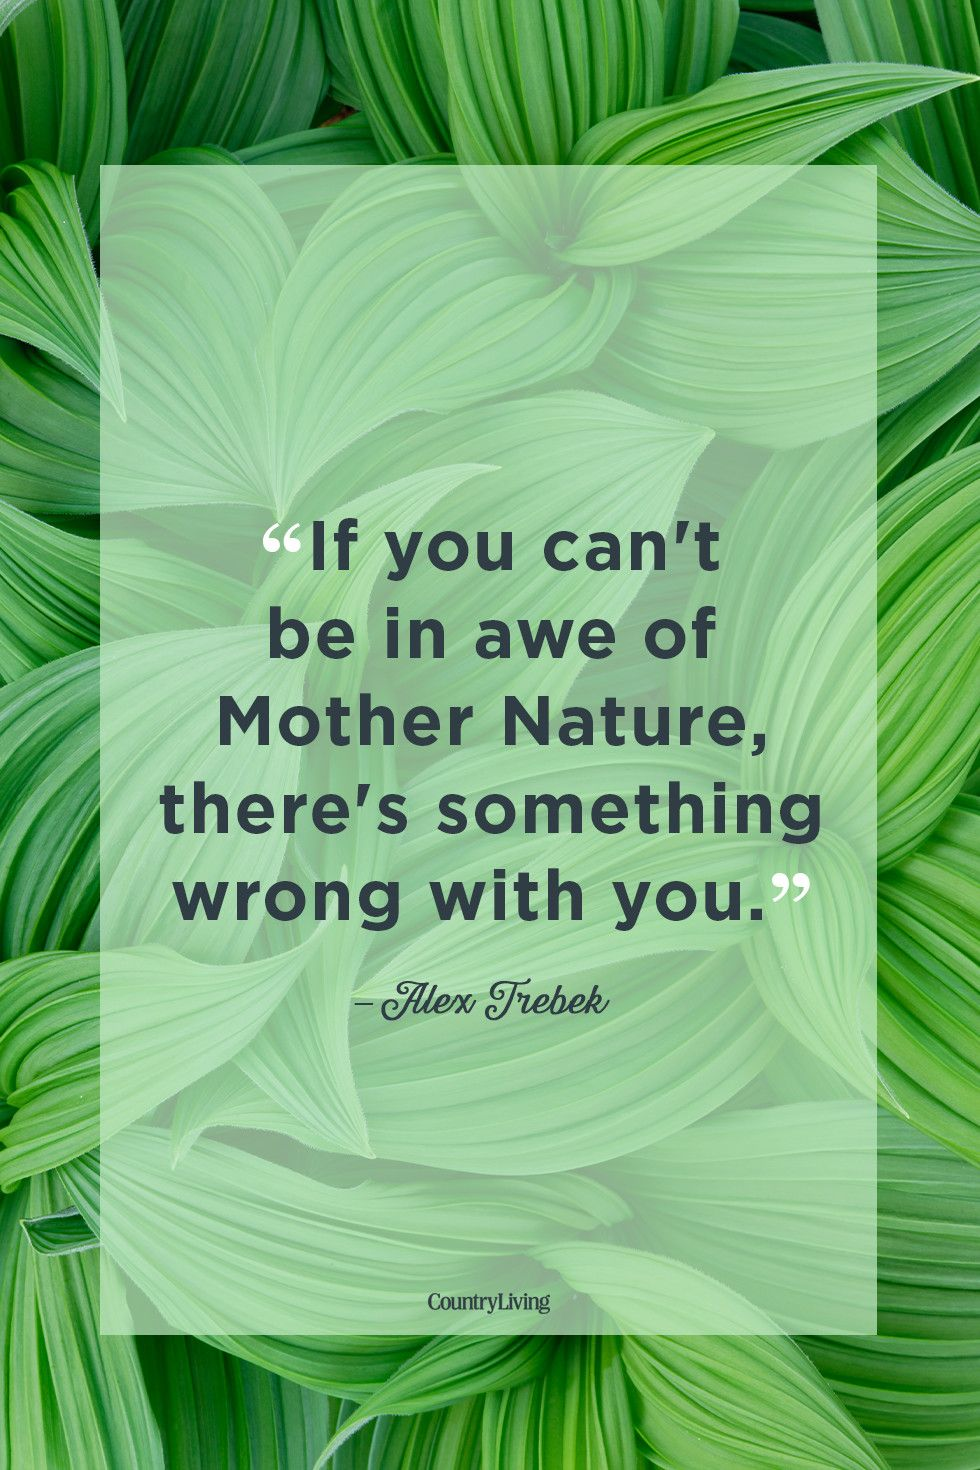 b31d72ad67c 35 Best Nature Quotes - Inspirational Sayings About Nature